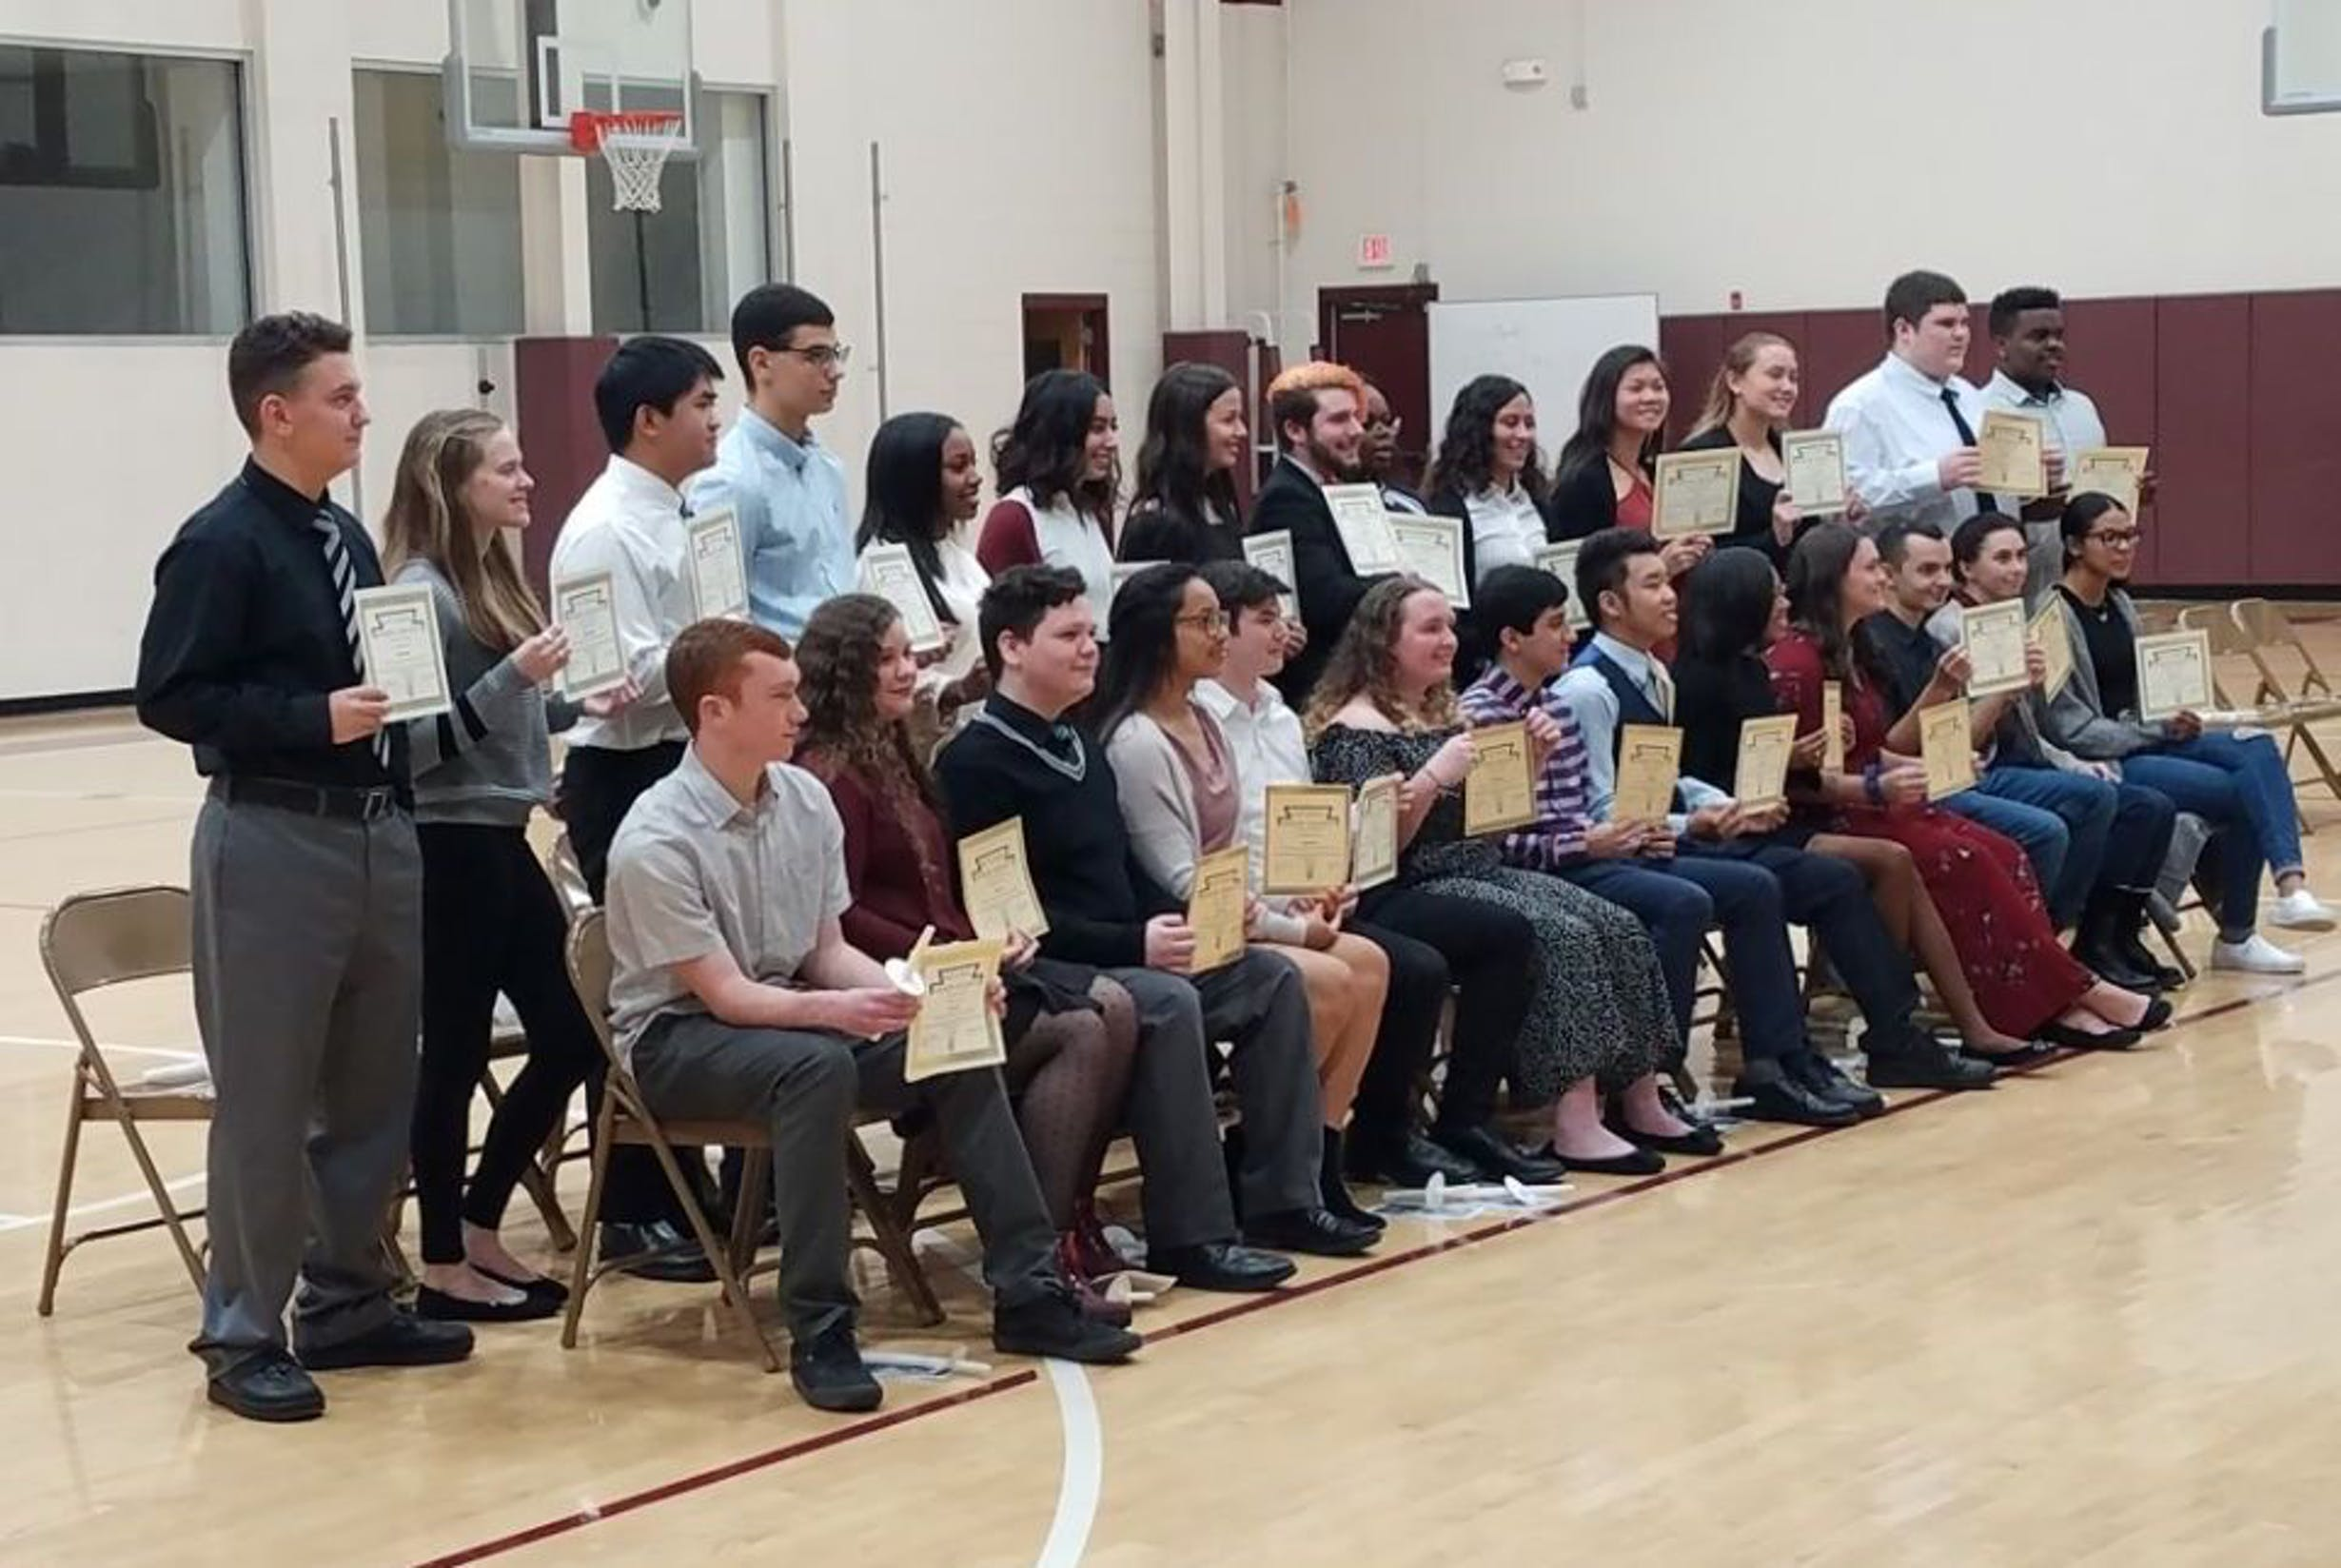 Large group of students sitting while holding up certificates in the school gym